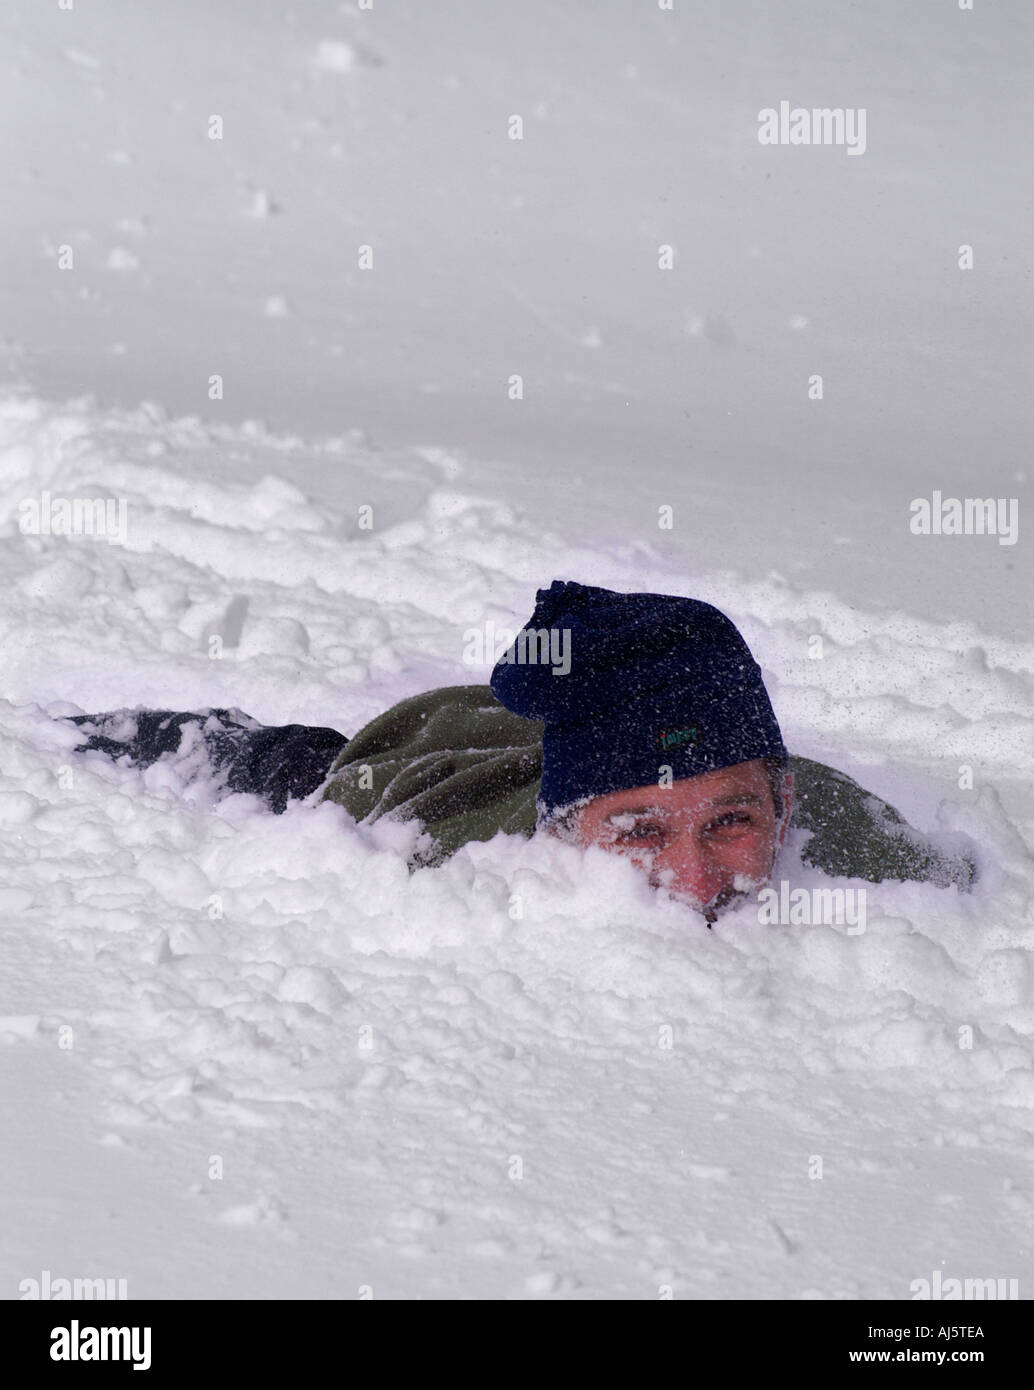 Man Buried In Snow Stock Photo, Royalty Free Image